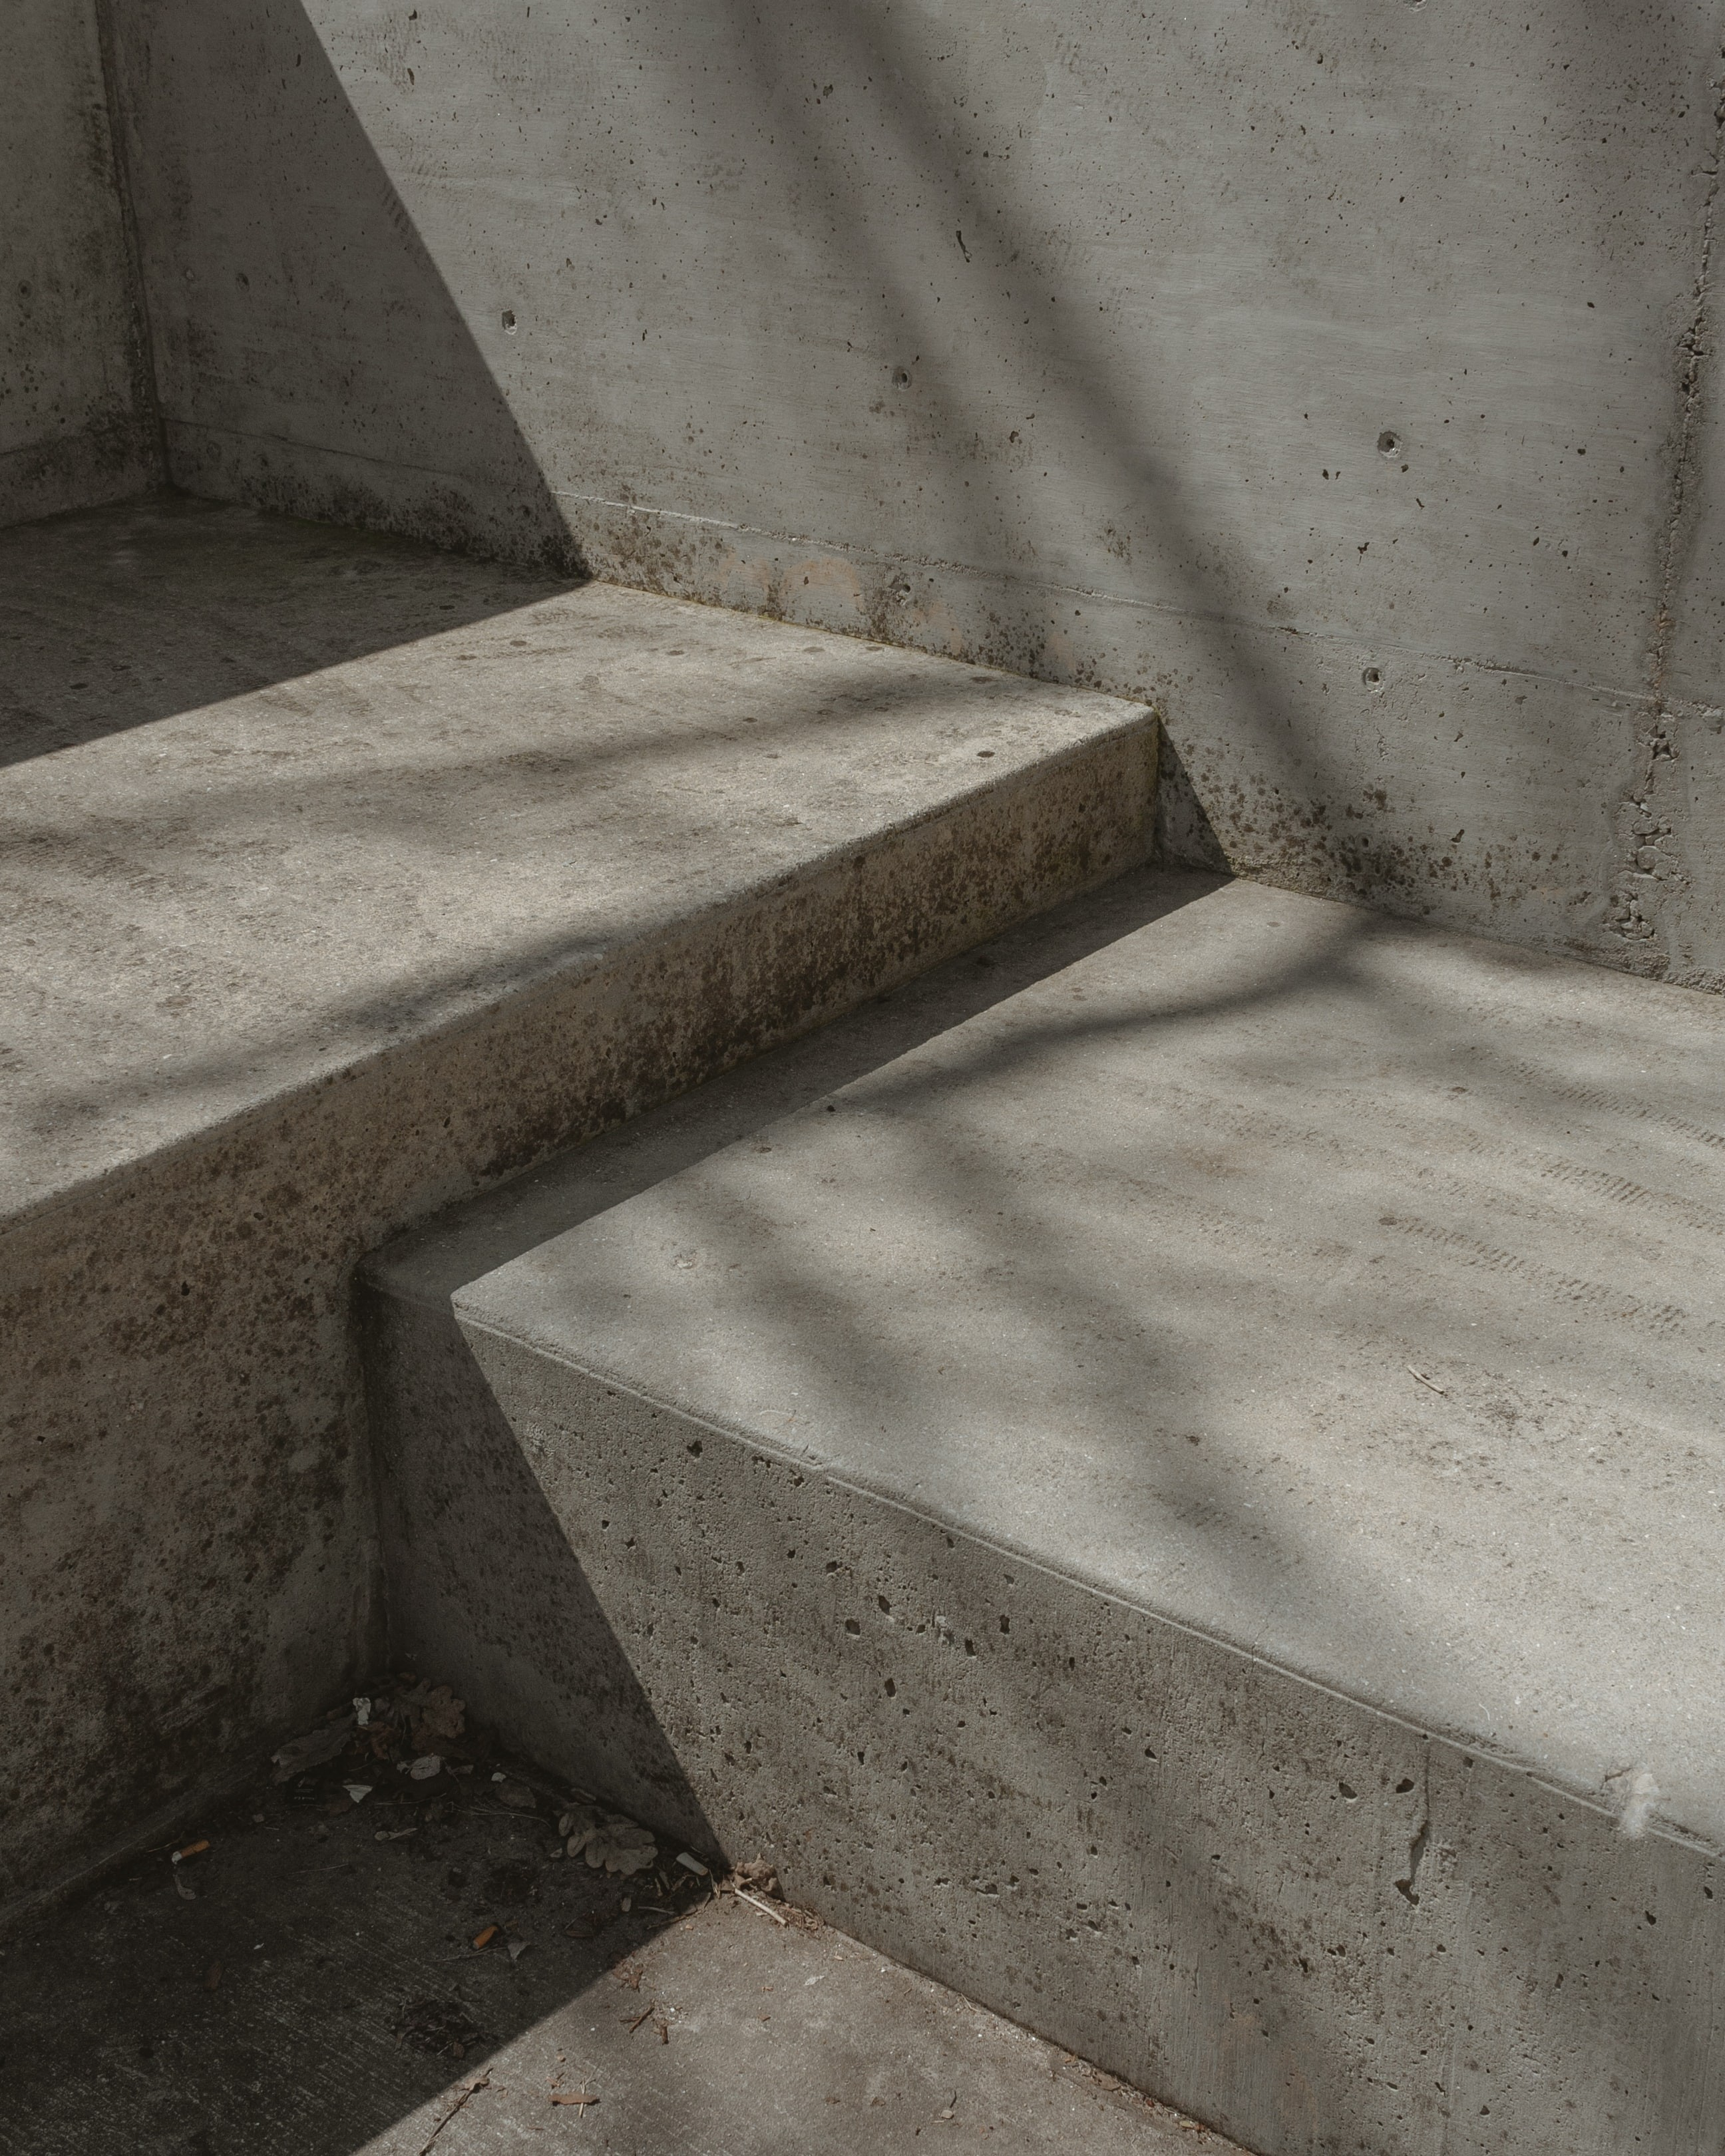 Concrete steps with no curb cut or handrails